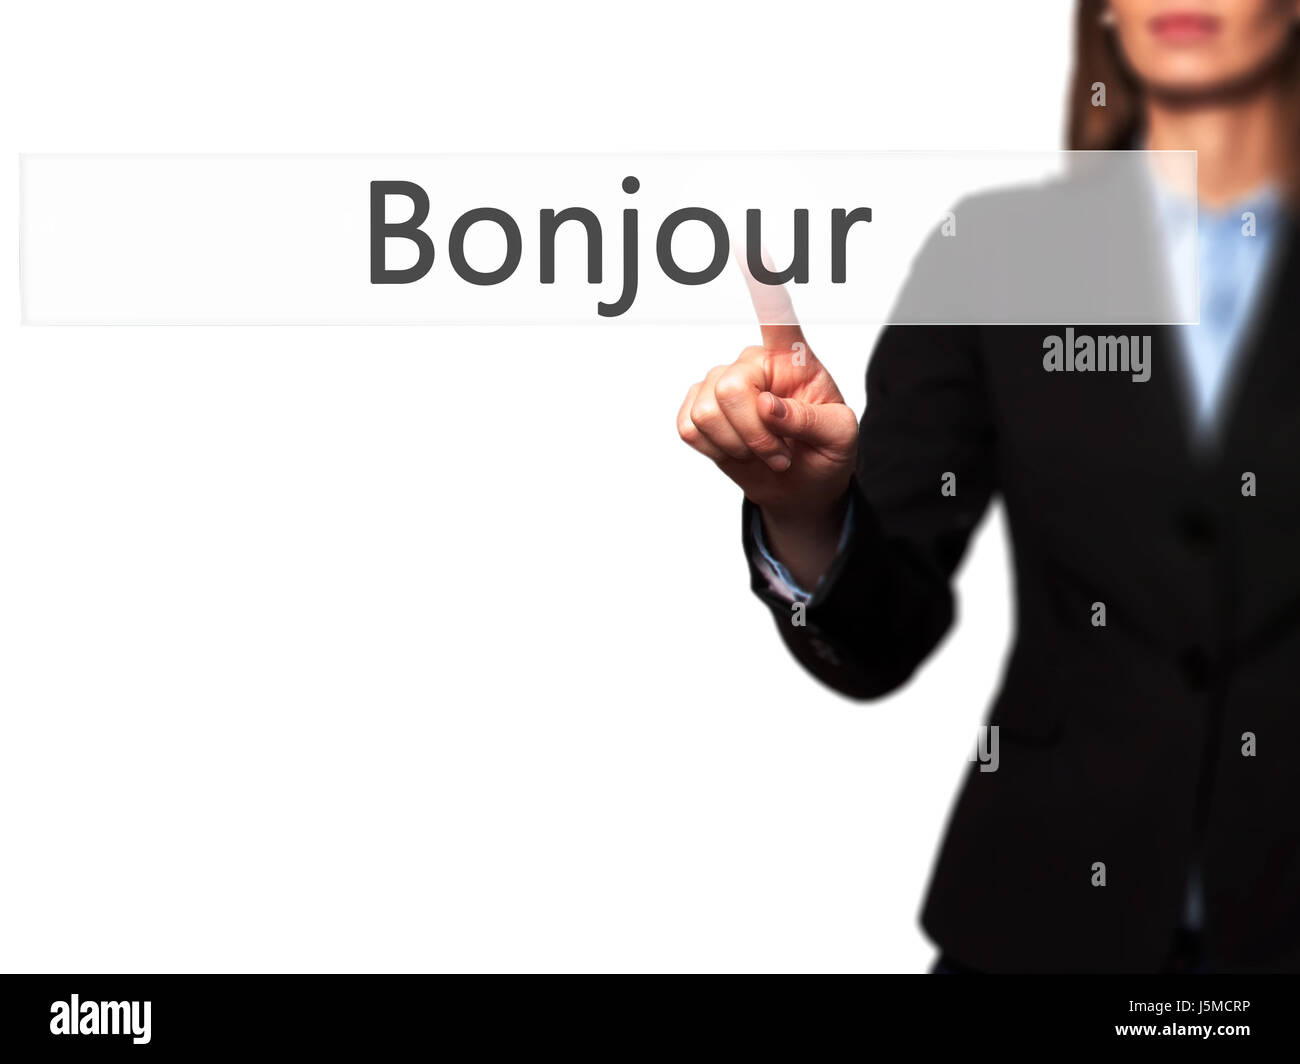 Bonjour Good Morning In French Young Girl Working With Virtual